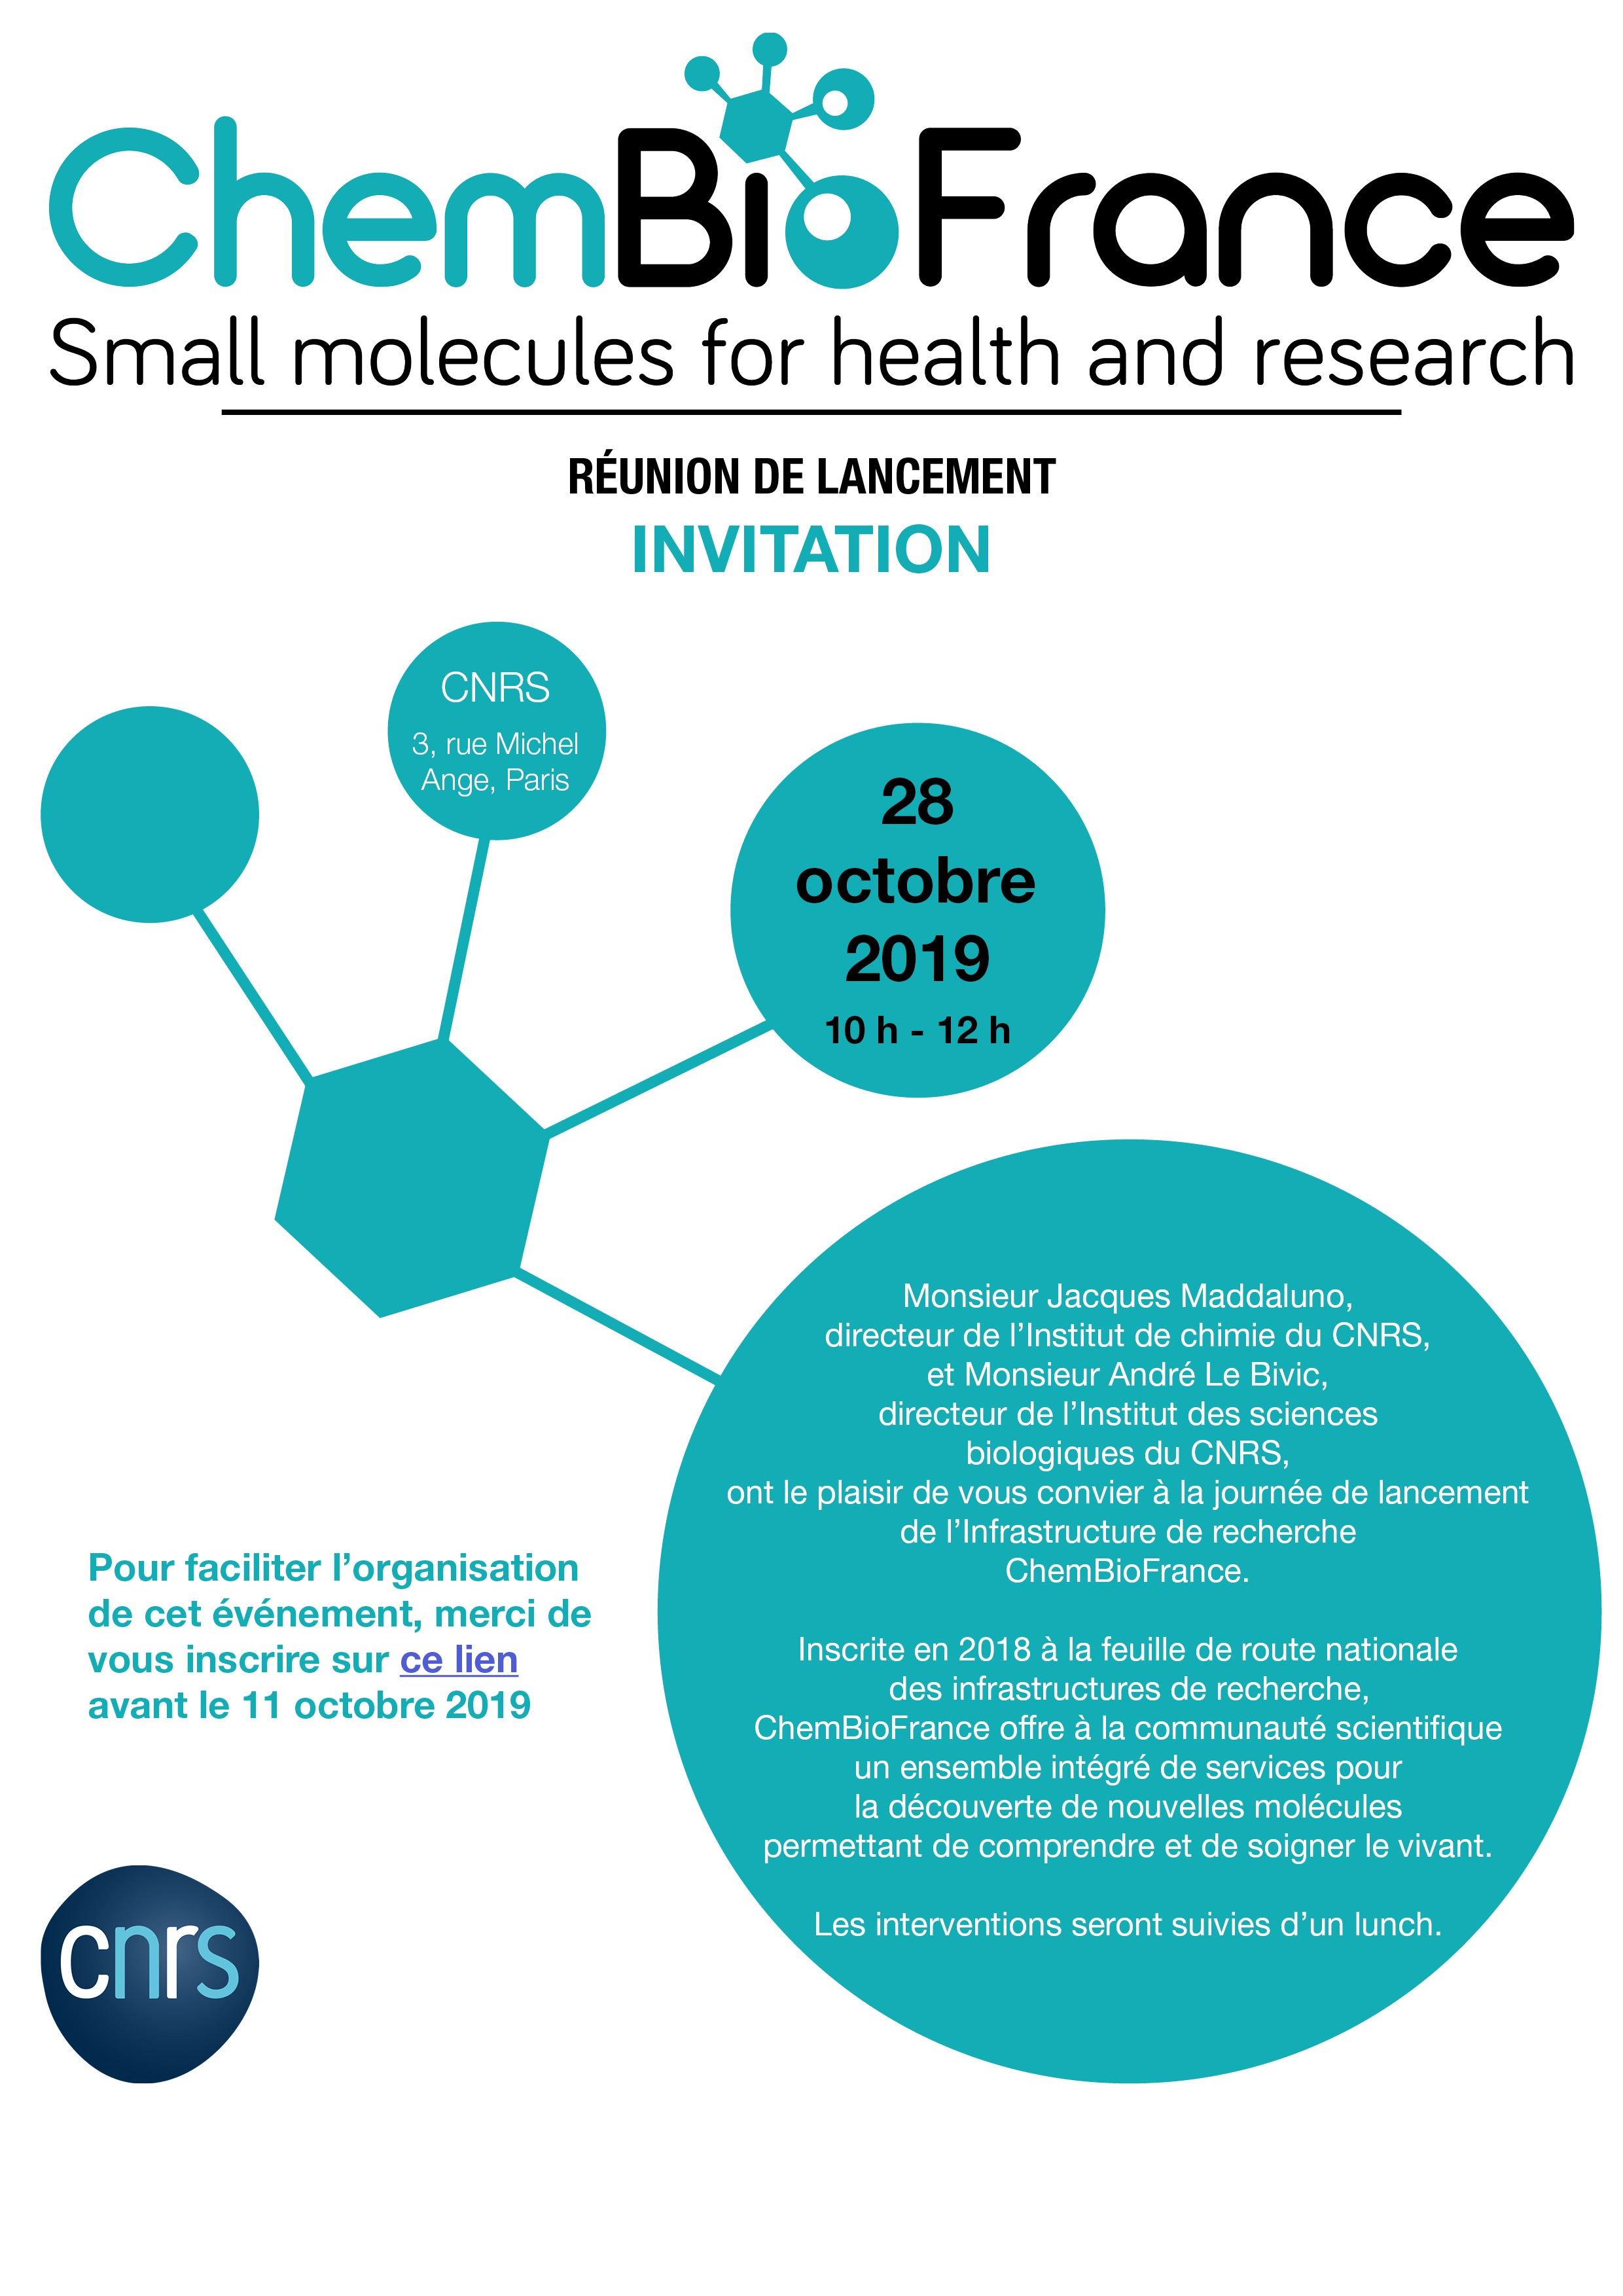 Invitation ChemBioFrance - 28 octobre 10h CNRS 3 rue Michel Ange 75016 Paris